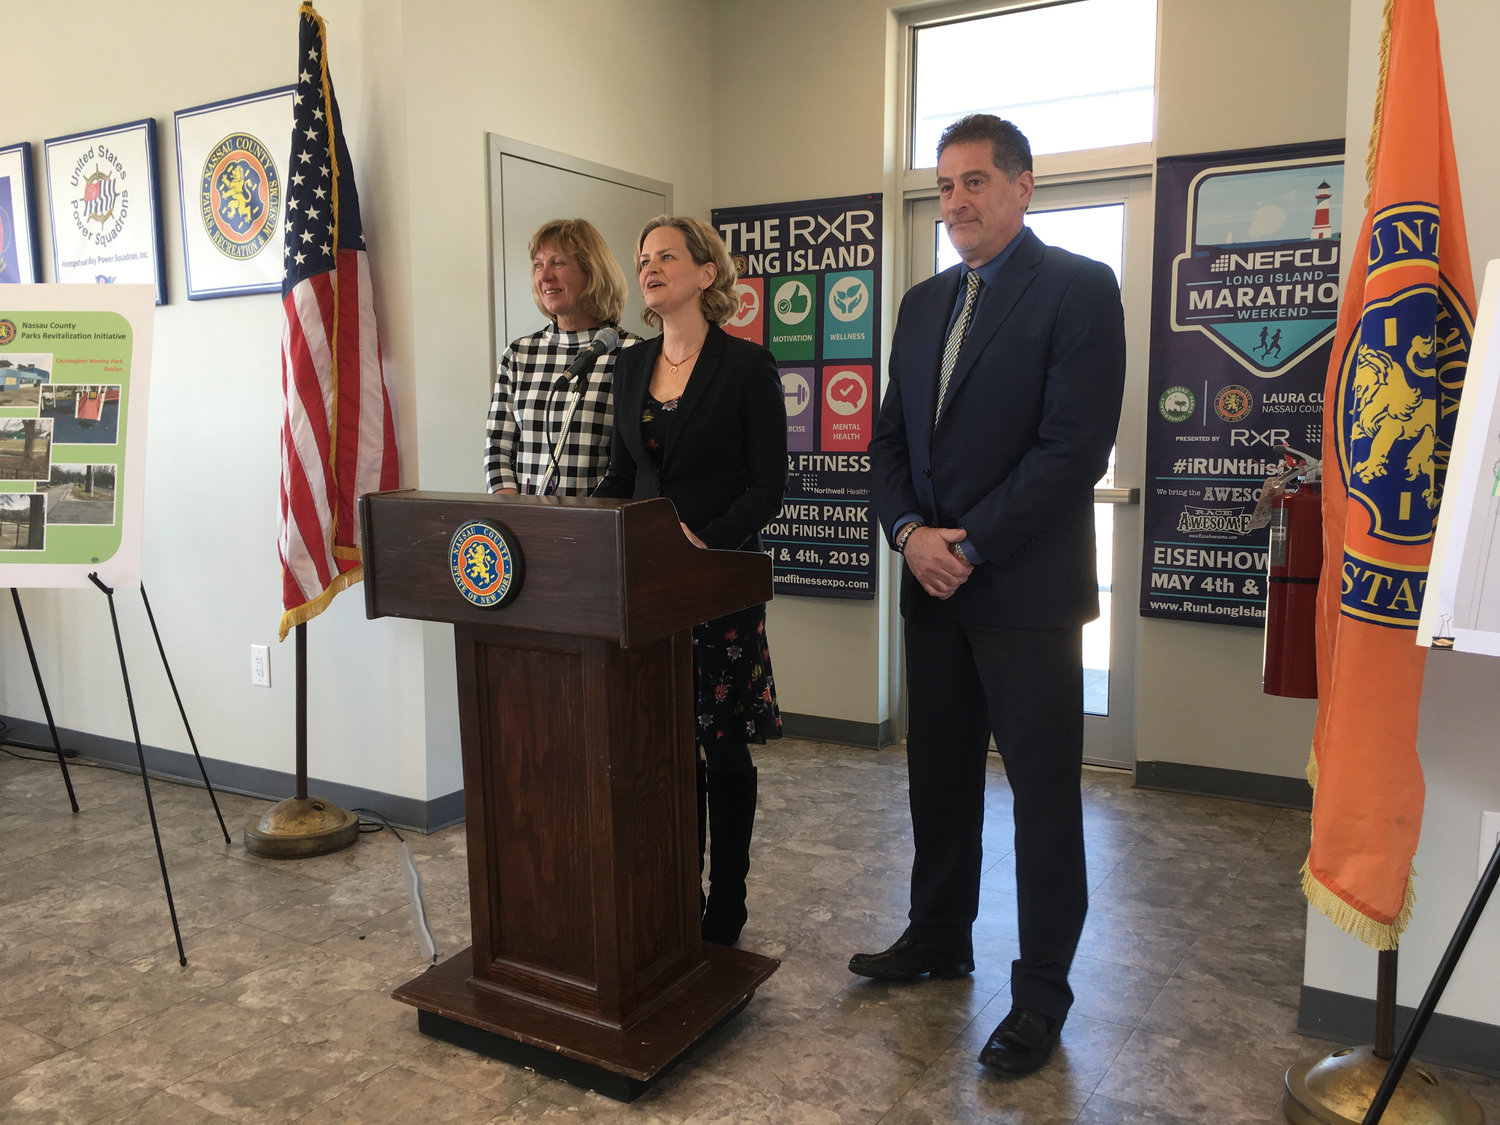 County Executive Laura Curran, at lectern, was joined by Parks Commissioner Eillen Krieb and Deputy County Executive for Parks and Public Works Brian Schneider at a March 5 news conference focusing on the county's parks revitalization plan.